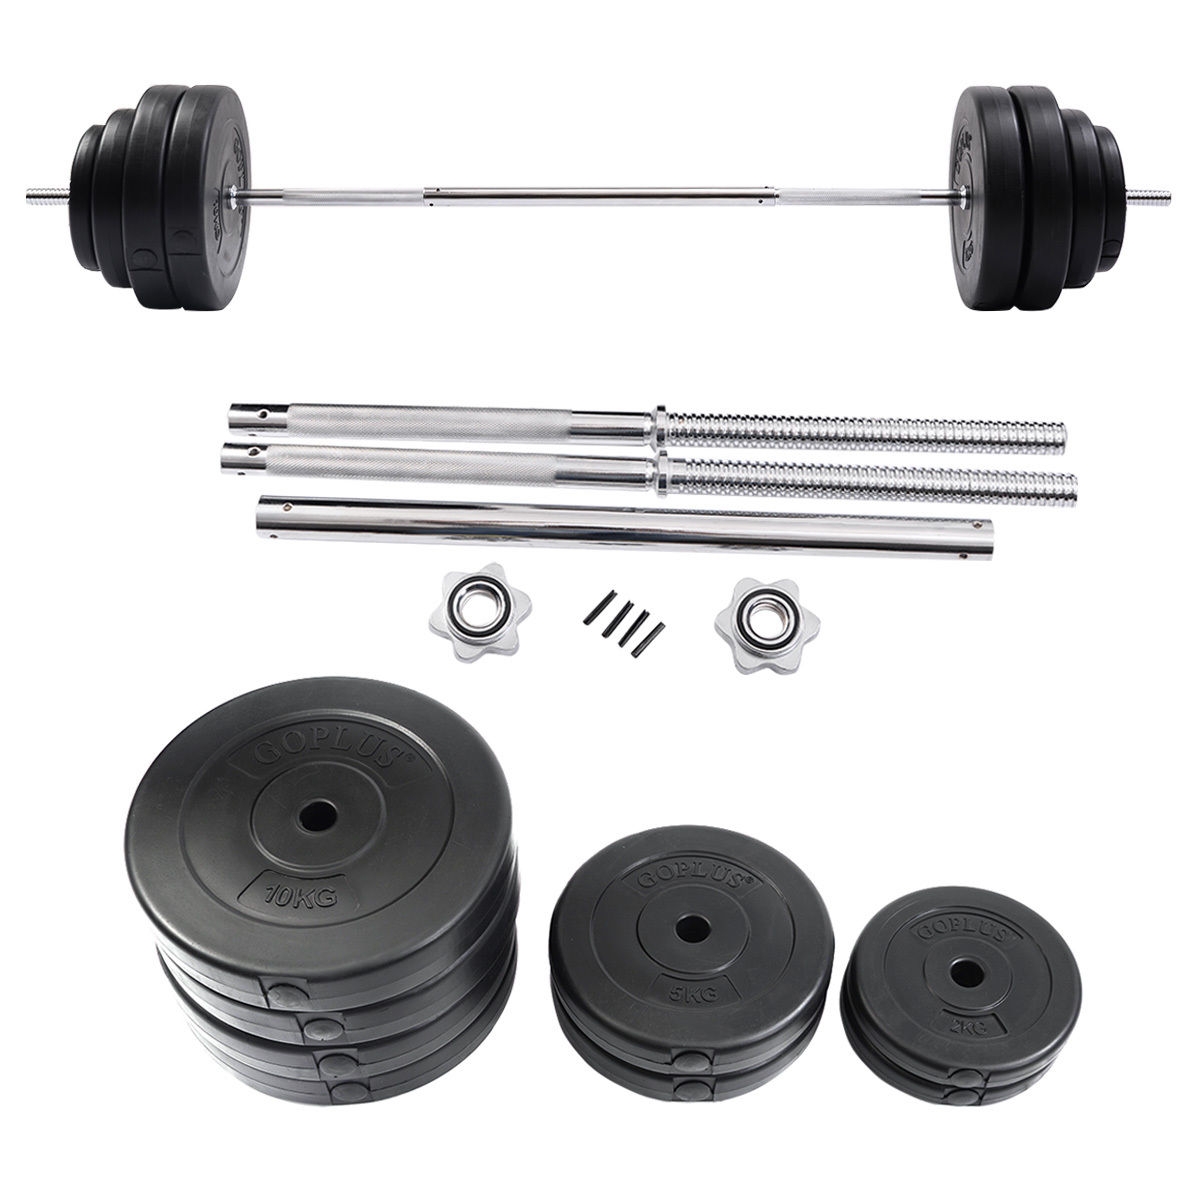 Workout Fitness Exercise Barbell Standard Curl Bar Weight: Goplus 132 LB Barbell Dumbbell Weight Set Gym Lifting